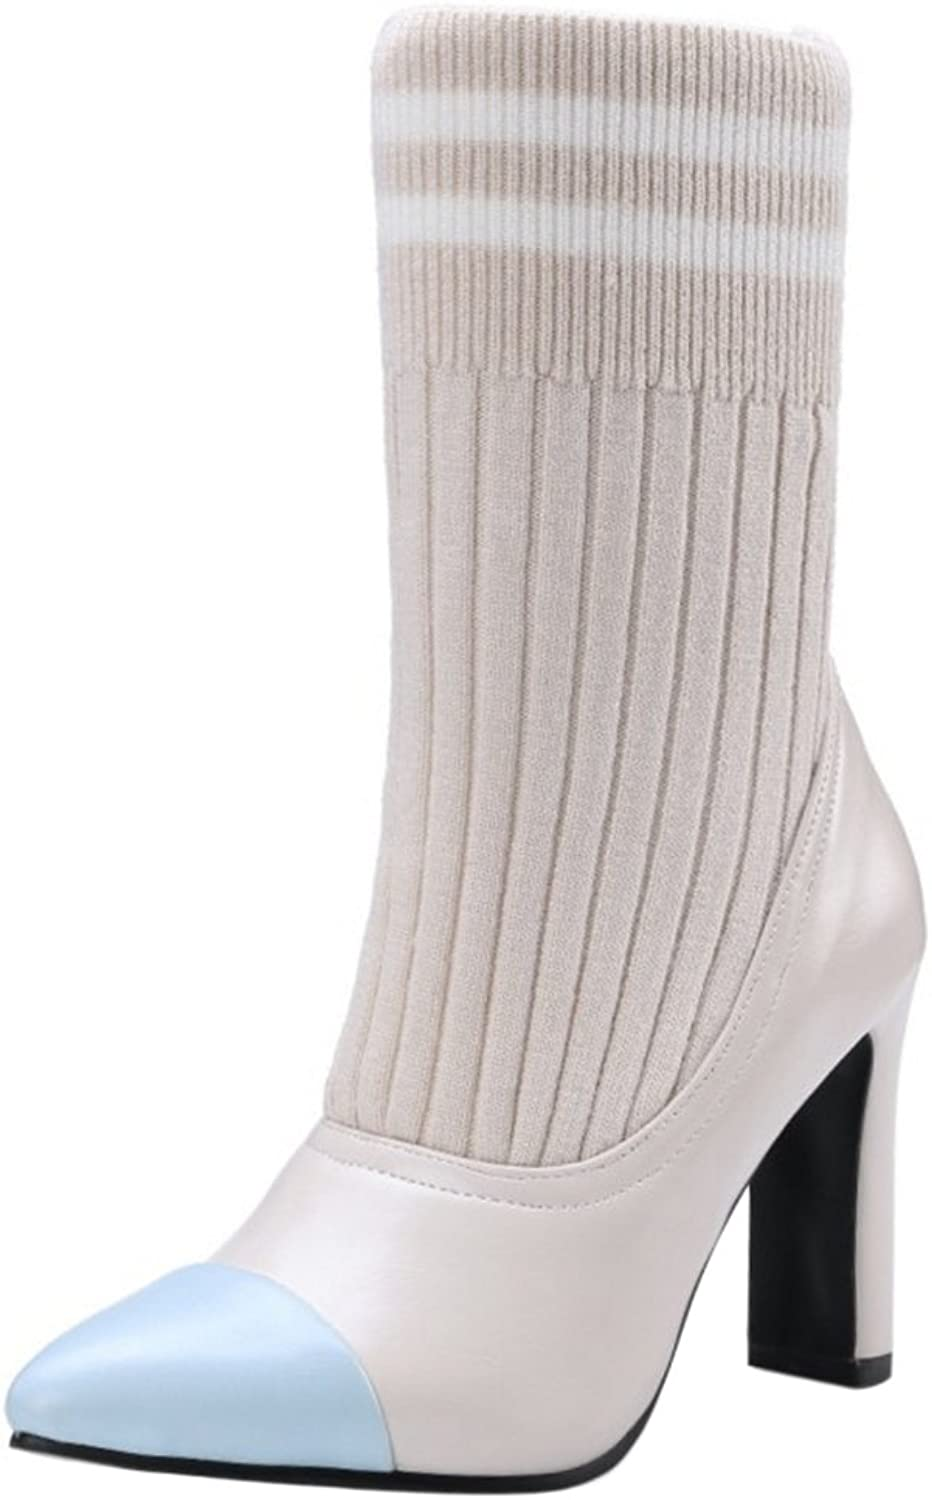 FANIMILA Women Fashion Pull On Ankle High Boots with Knit